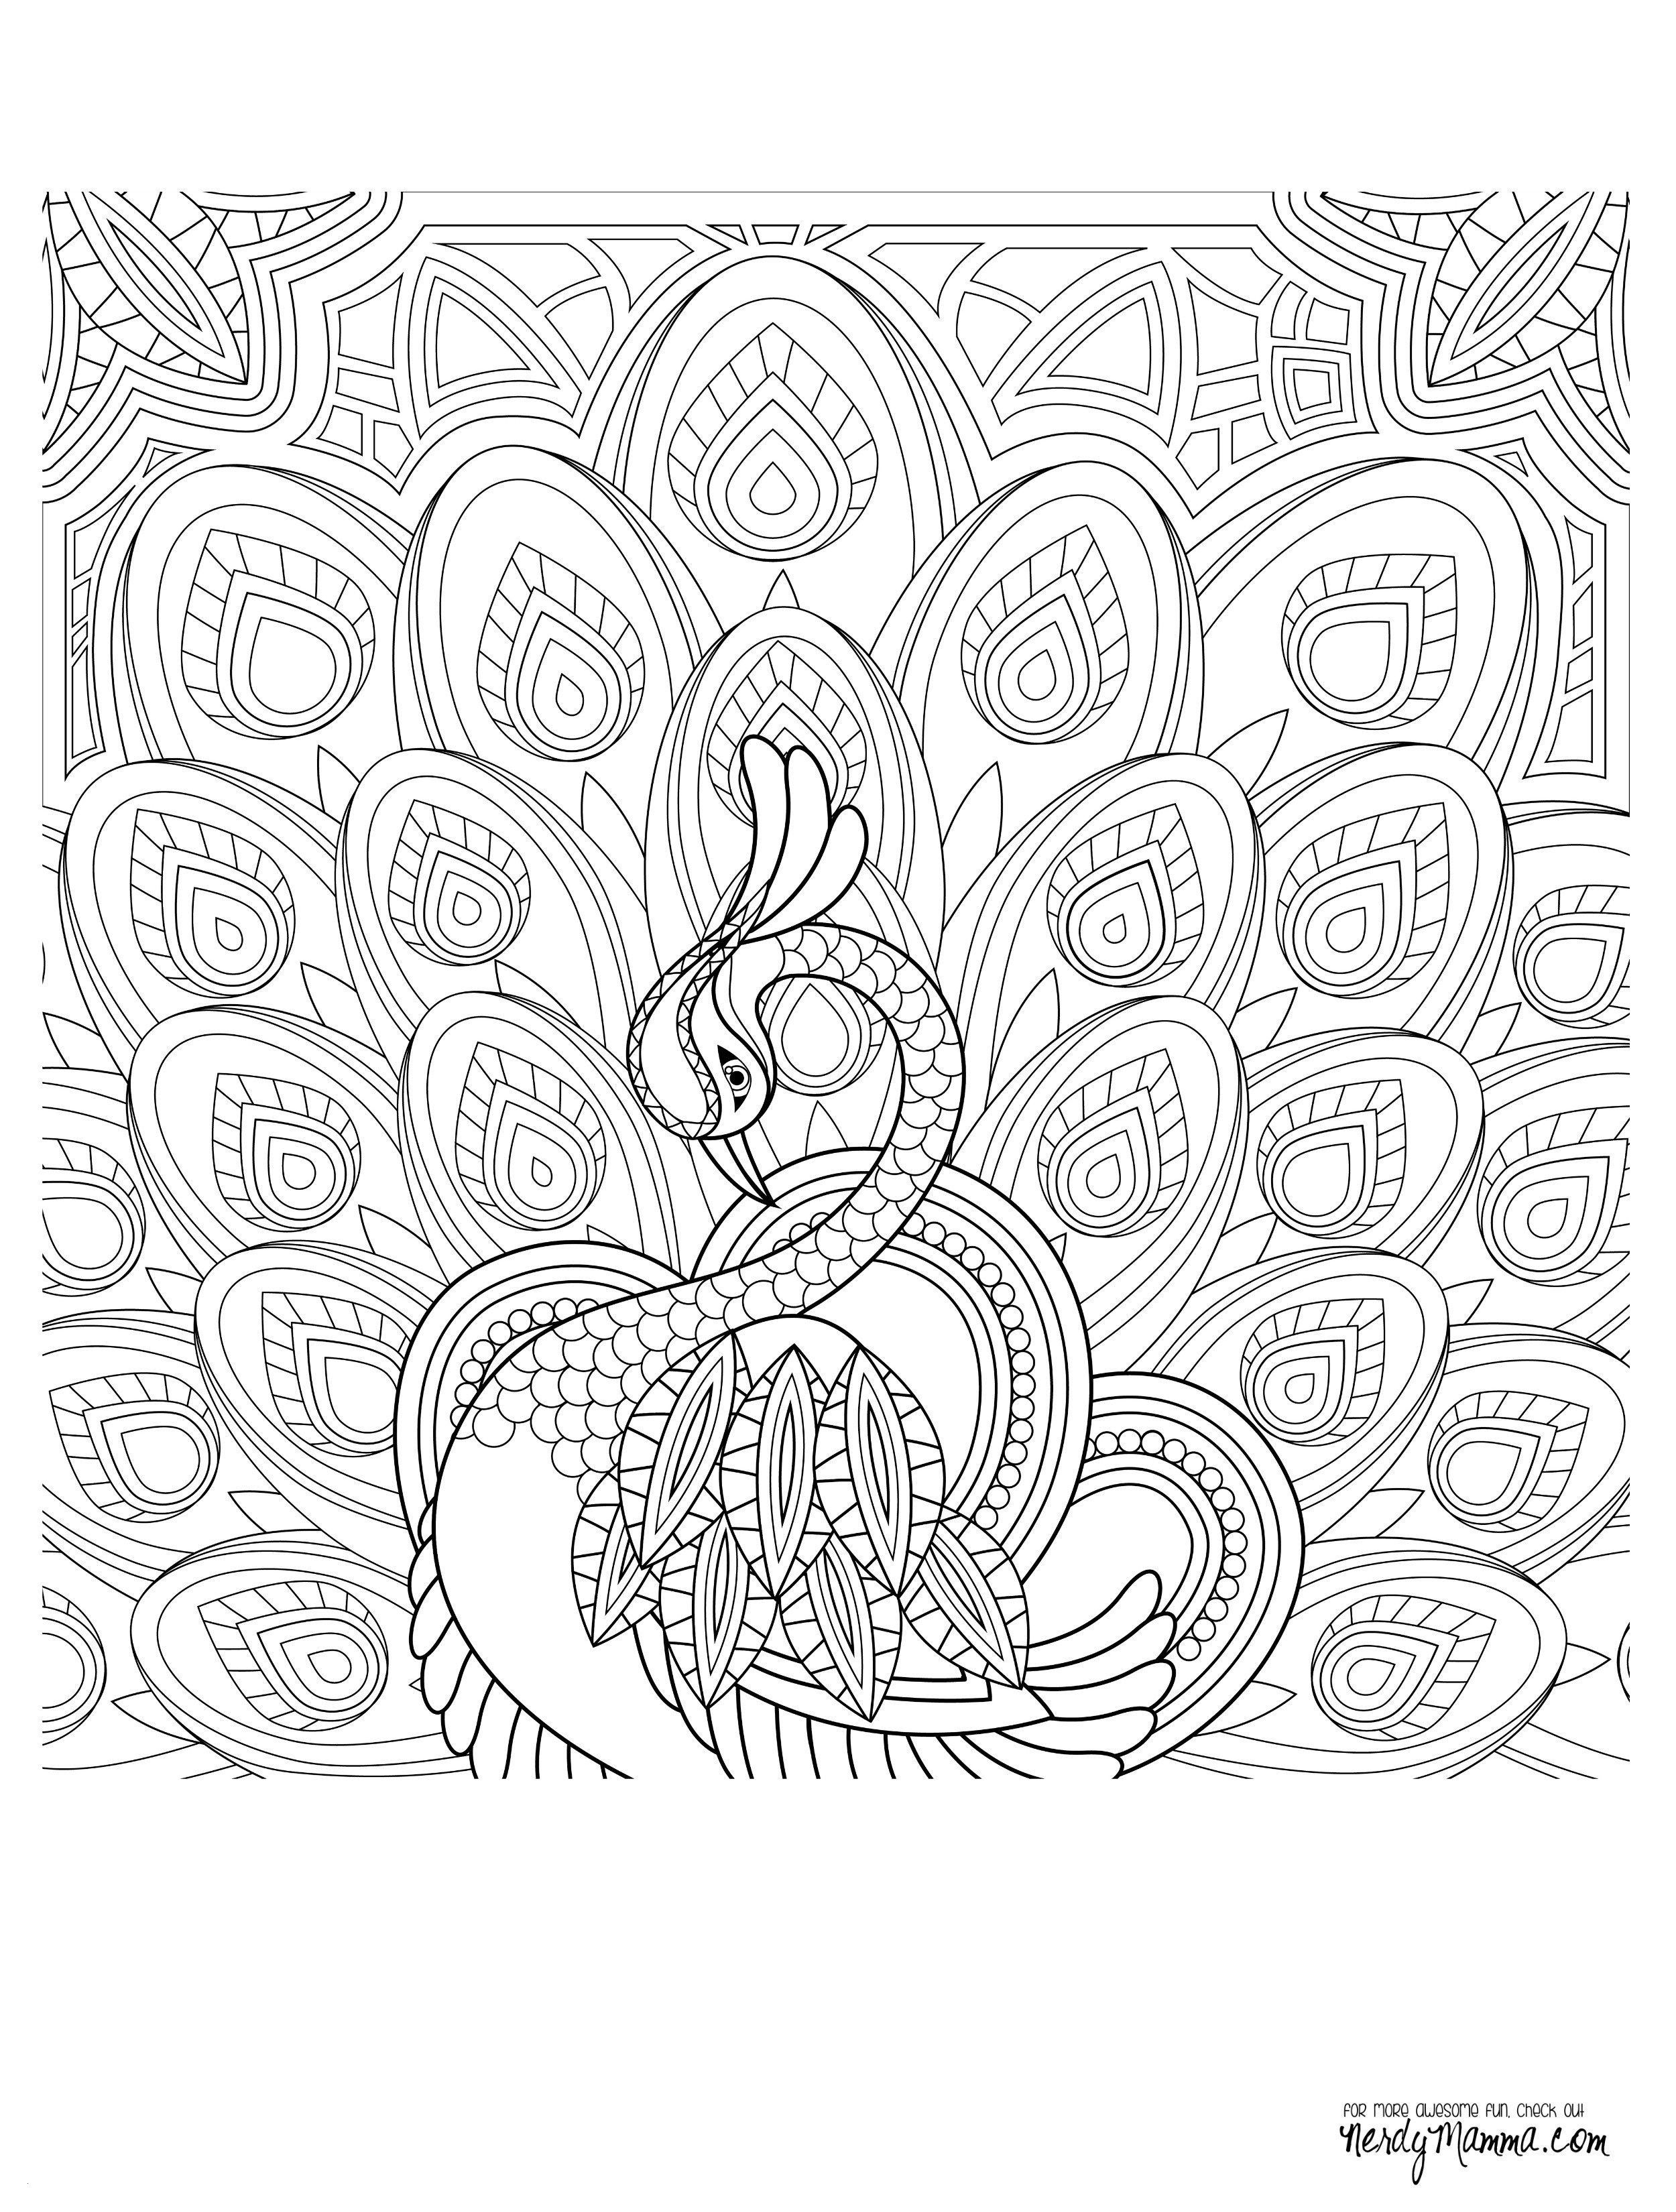 coloring pages you can print Download-Hen Coloring Page Hen Coloring Page Coloring Pages for Kides Elegant Coloring Printables 0d 20-r